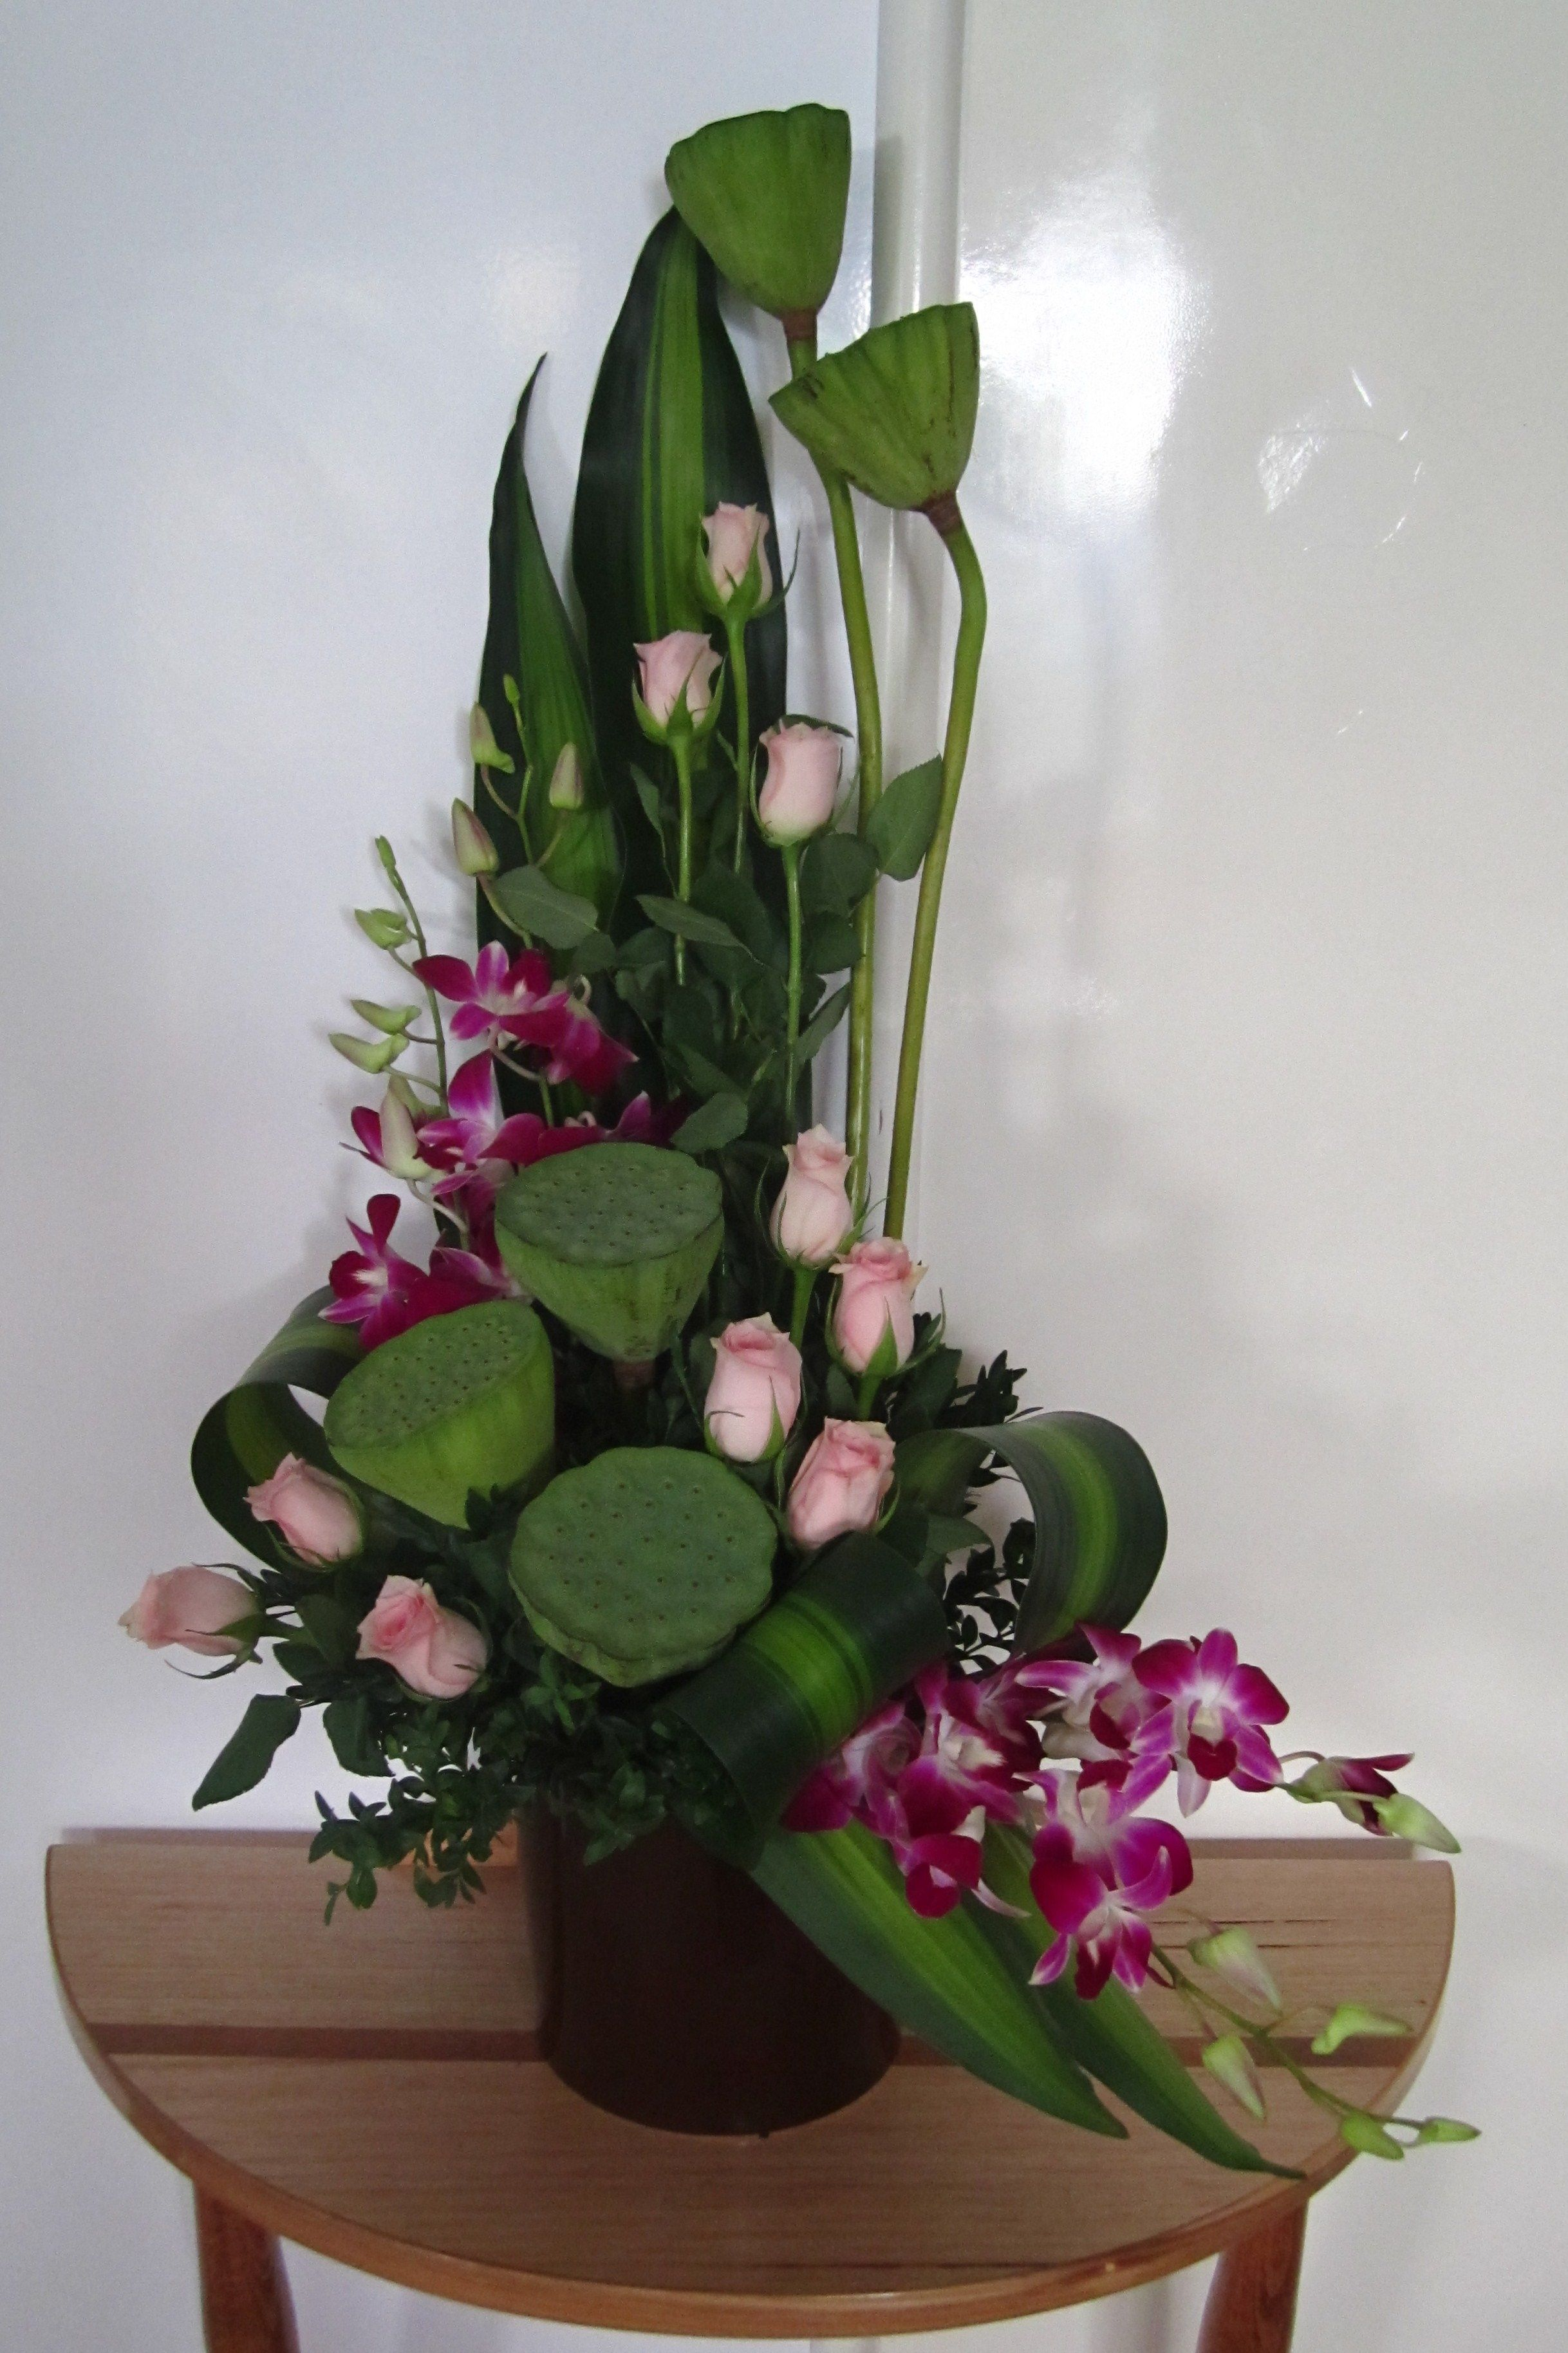 L Shaped Arrangement Featuring The Beautiful Lotus Pods From The